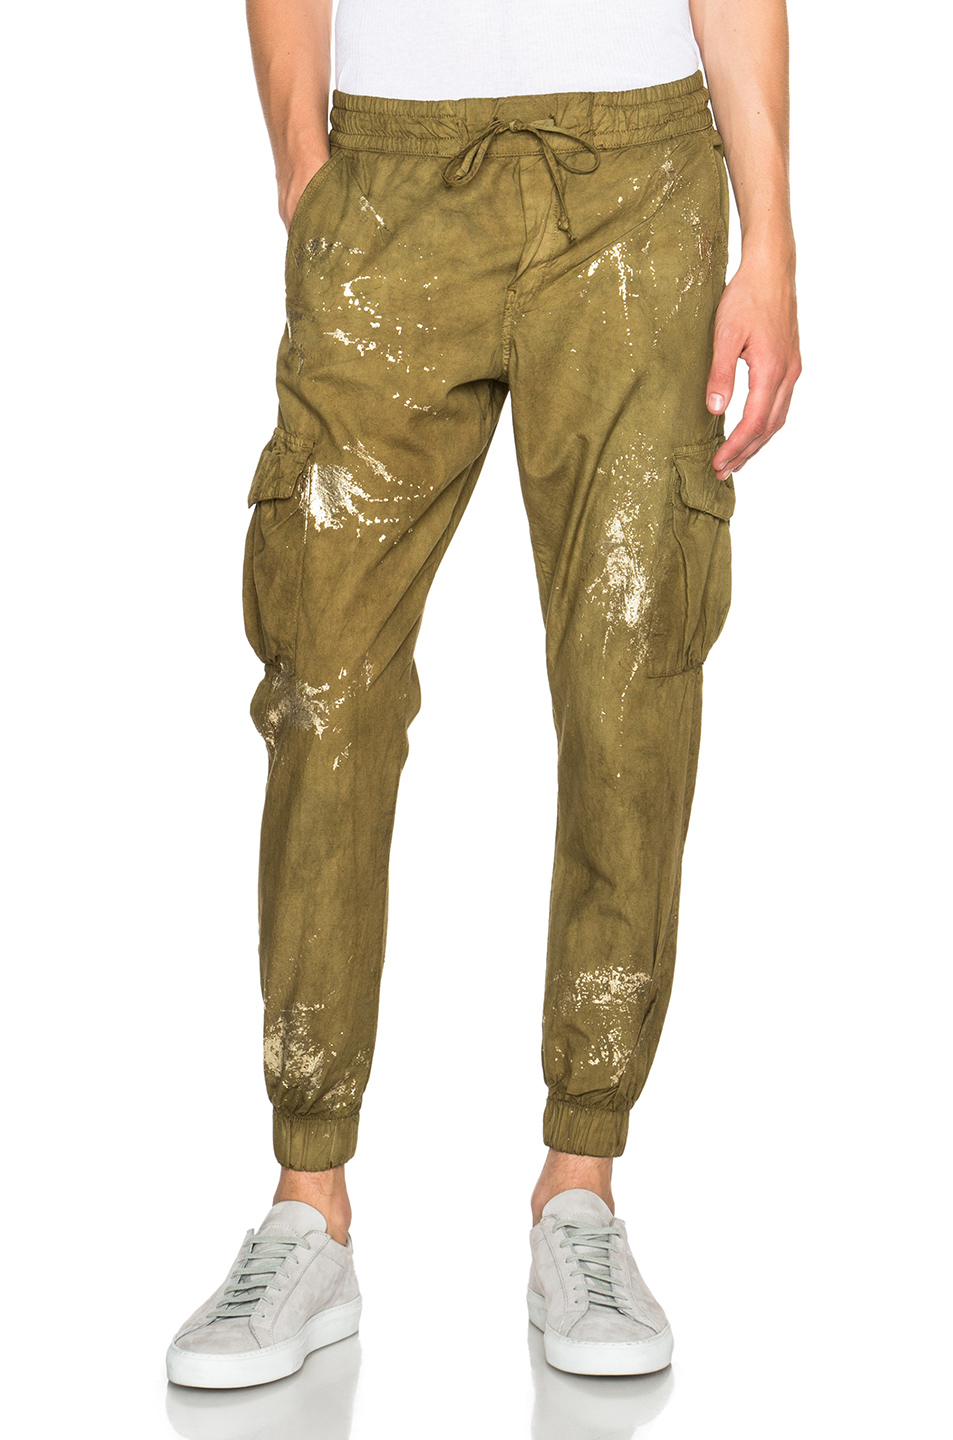 Bliss and mischief Men's Johnny Cargo Pants in Green | Lyst